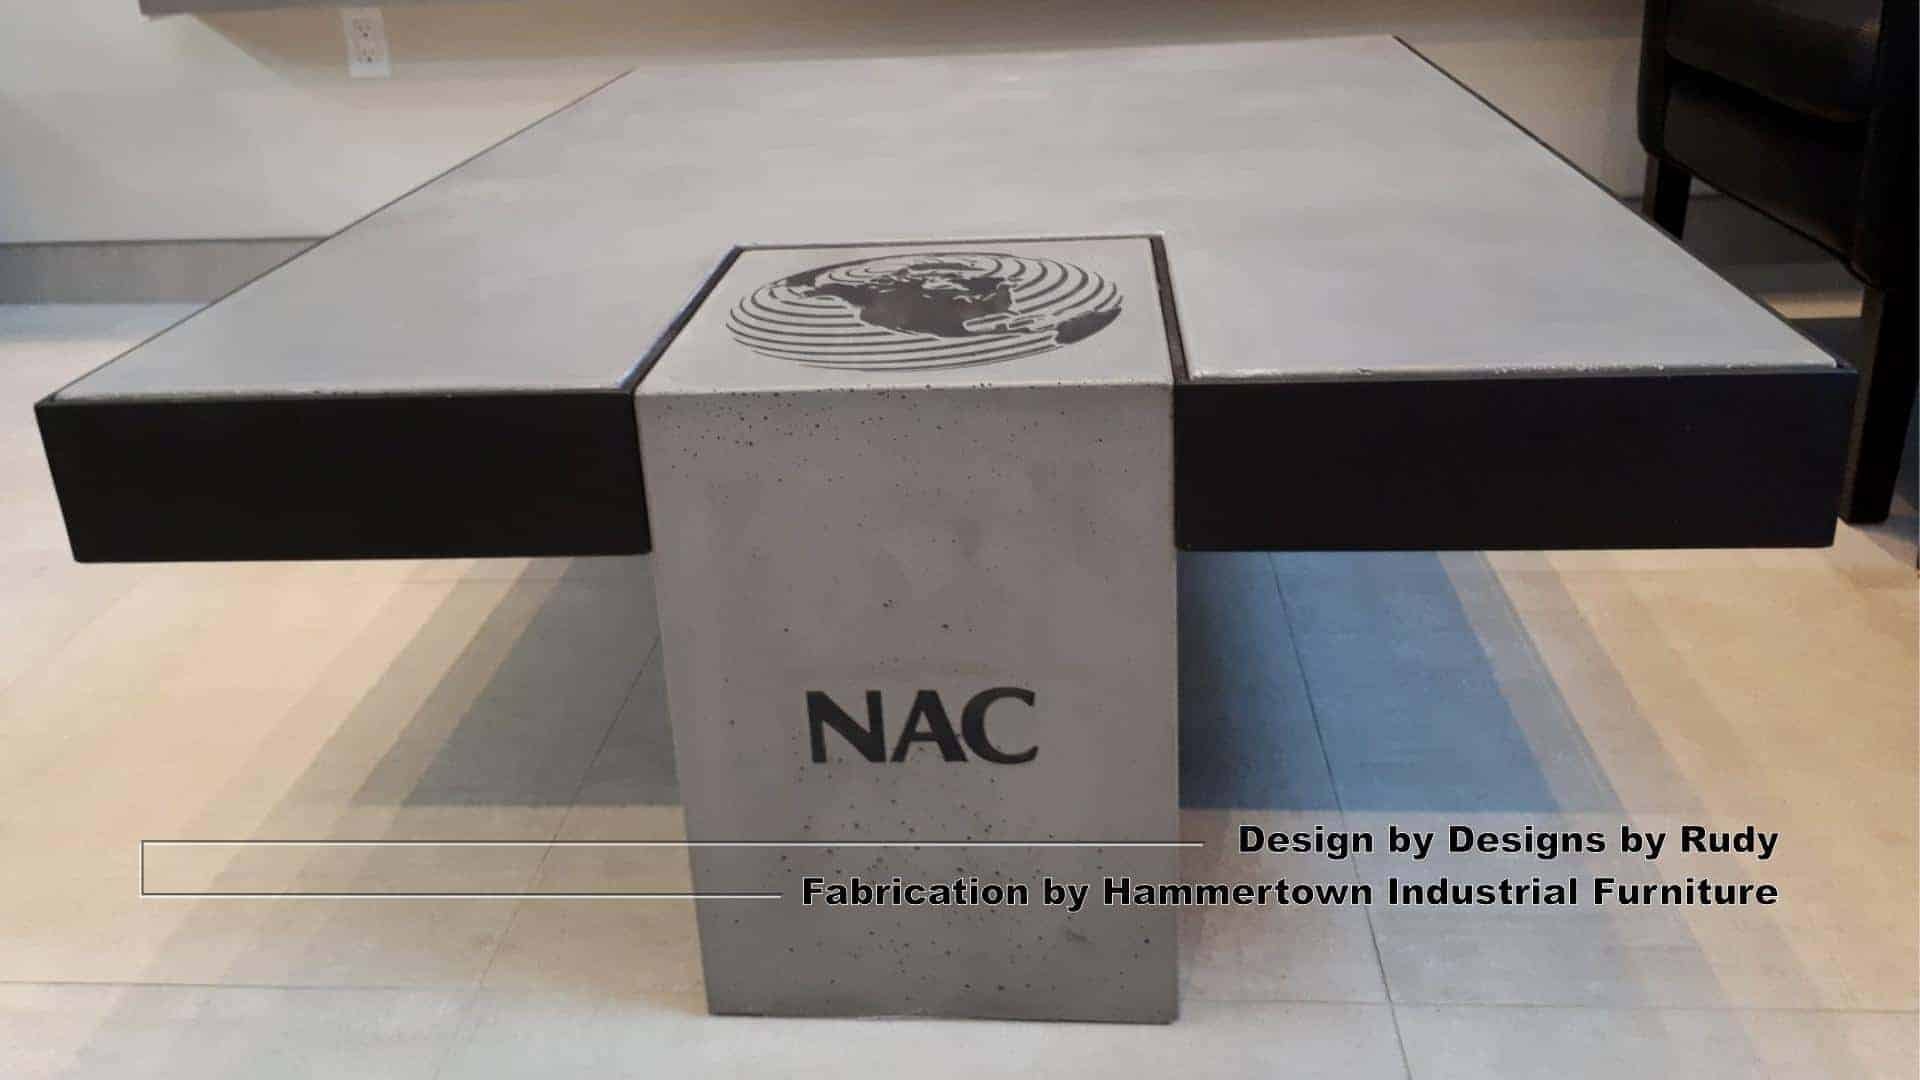 Concrete and steel coffee table for NAC, Designs by Rudy, Hammertown Industrial Furniture, view 4